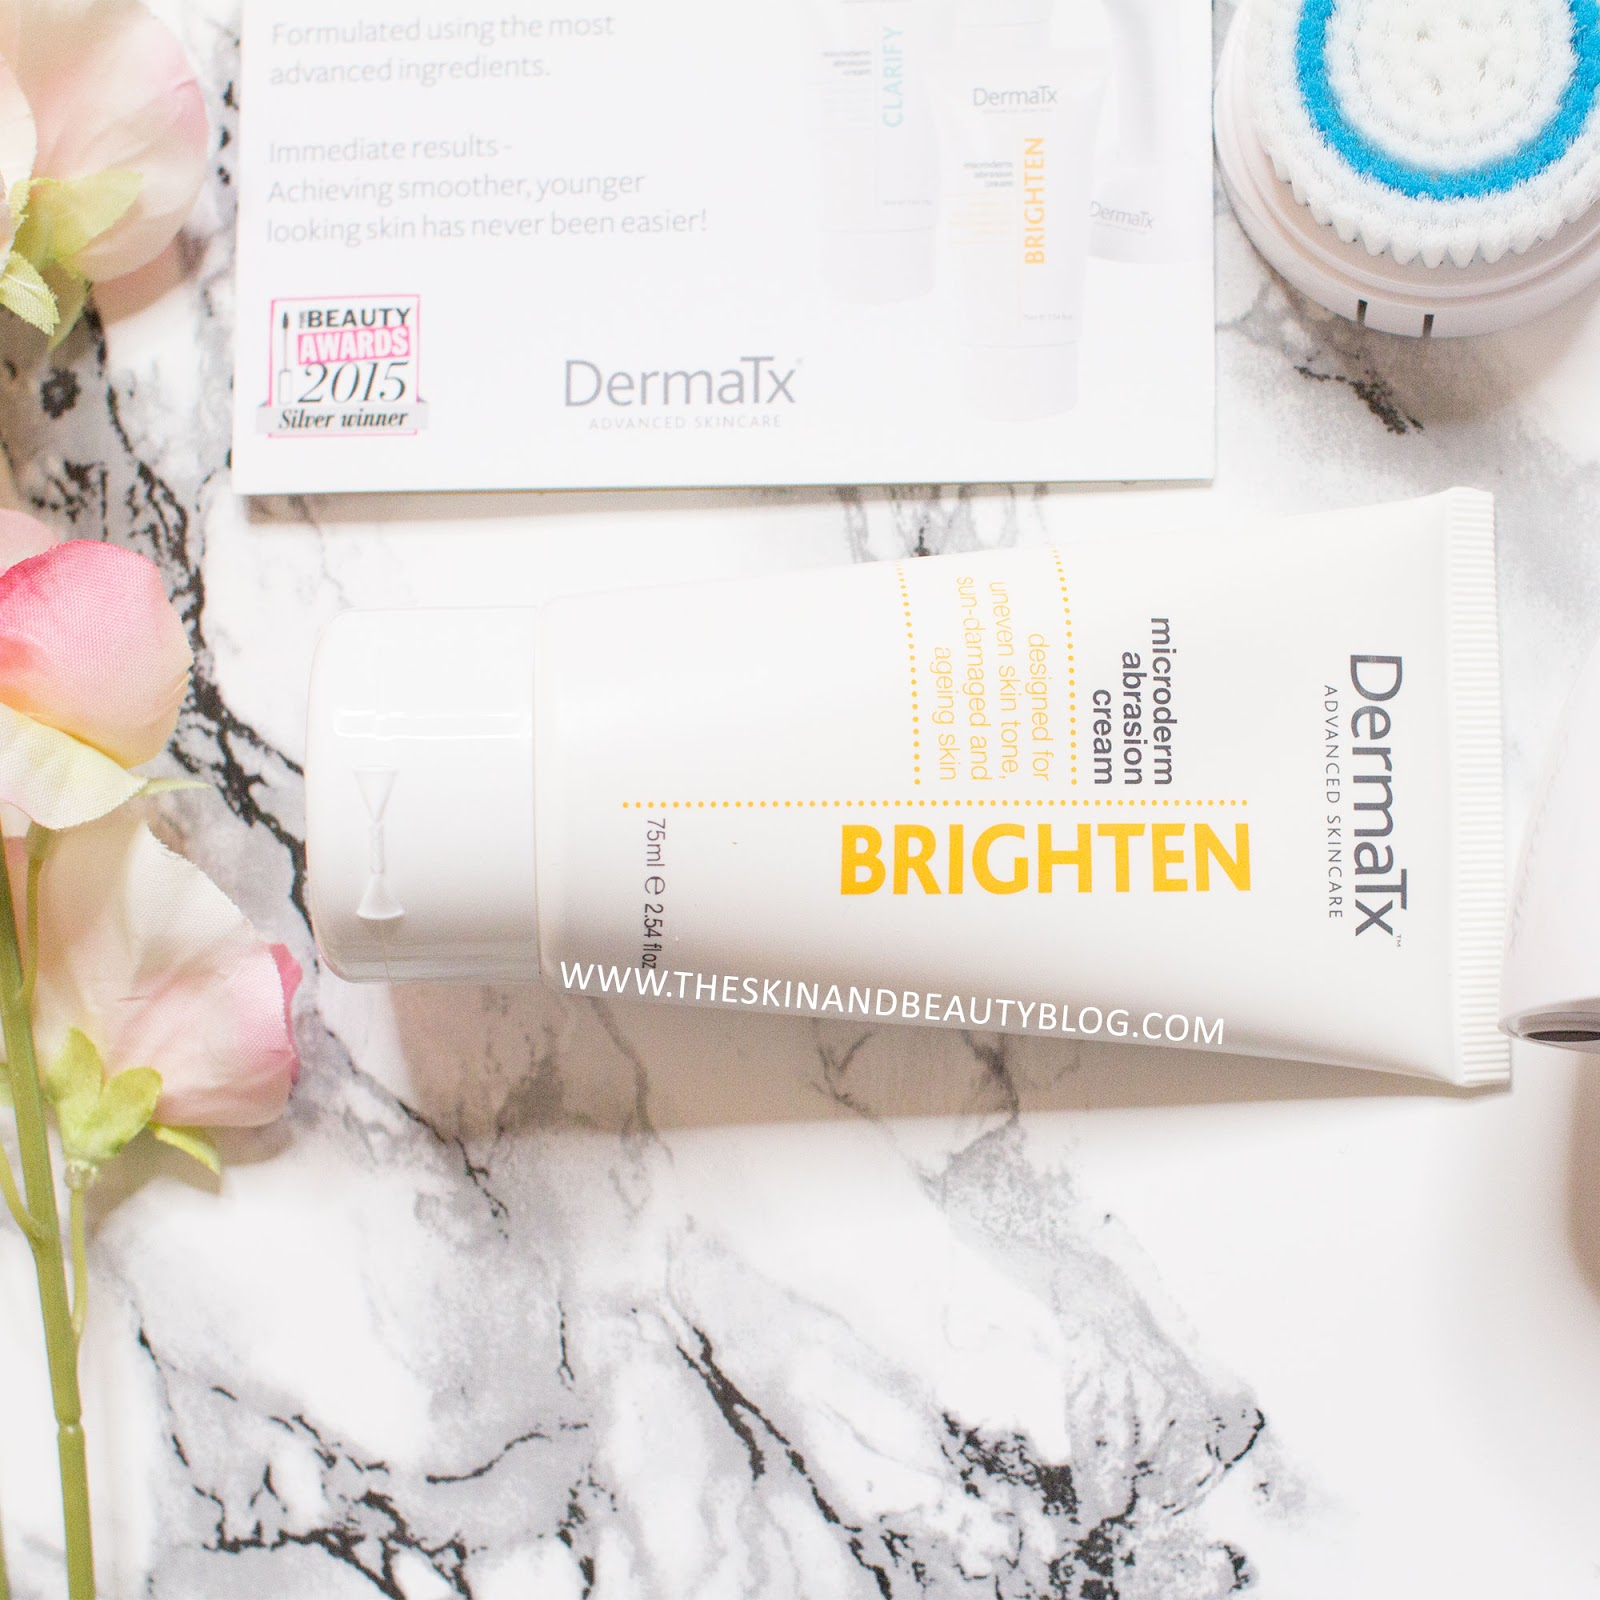 DermaTx Microdermabrasion Brighten Cream Review